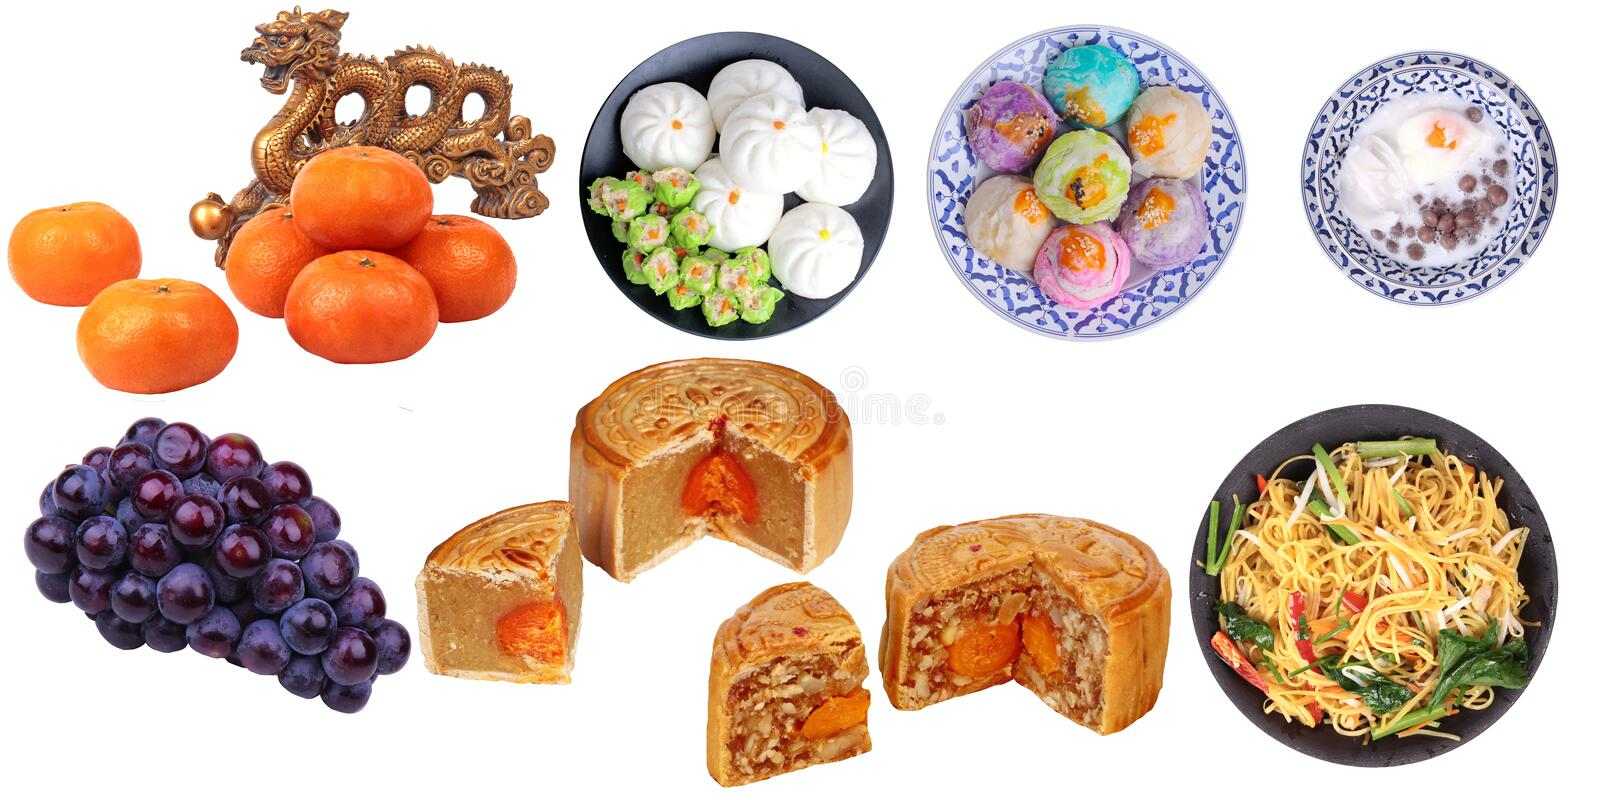 Isolated food for Chinese mooncake festival as friut, varities mooncake,fried chinese noodle and Chinese traditional desert royalty free stock photo